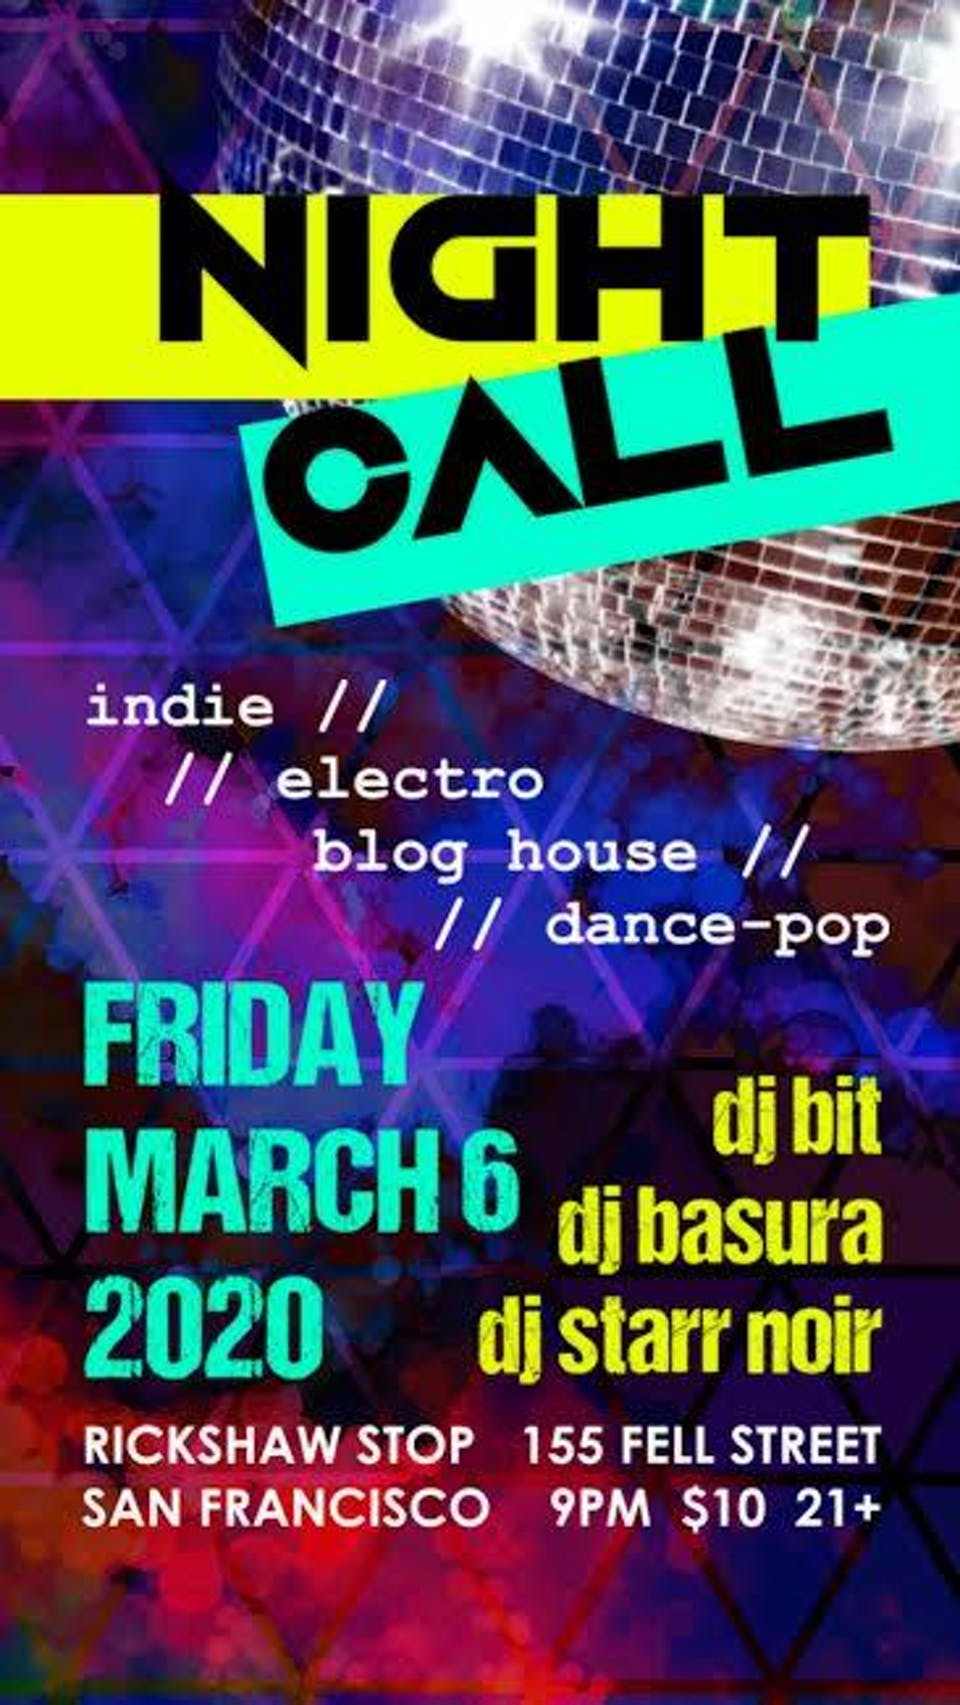 NIGHT CALL - Indie Electro/ Dance Pop/ Blog House Party!